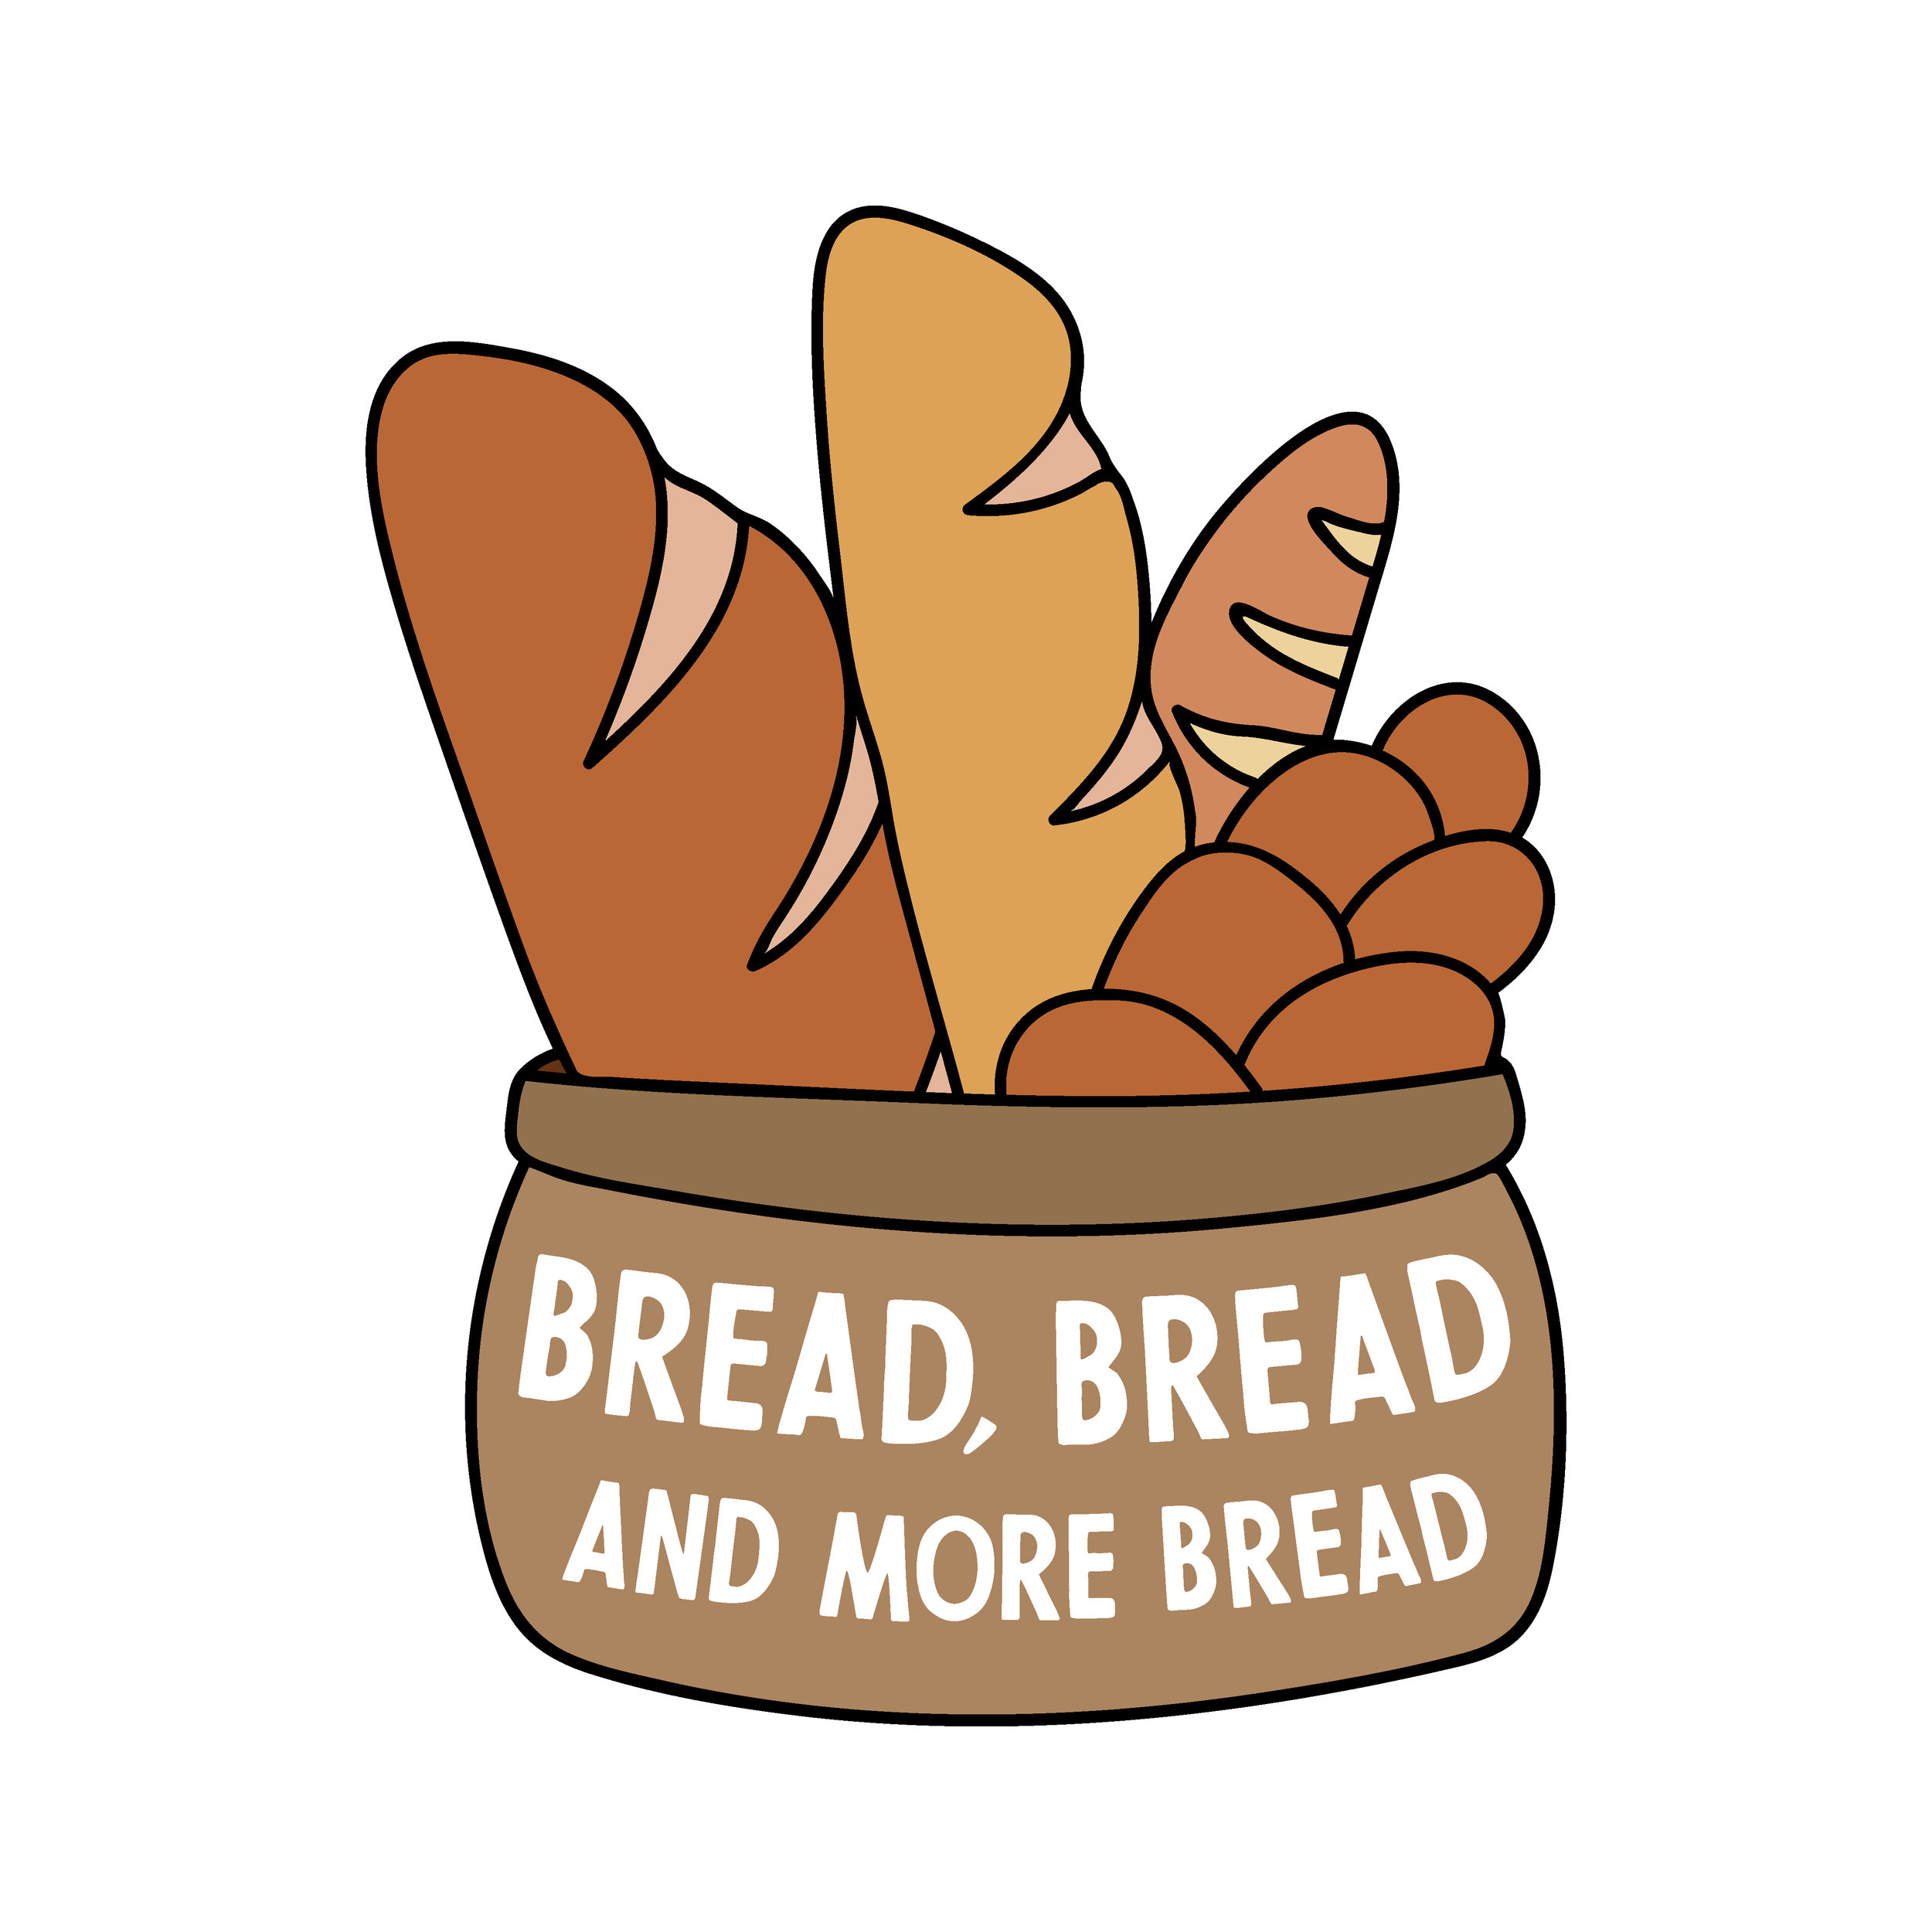 Bread, Bread and More Bread Bakery